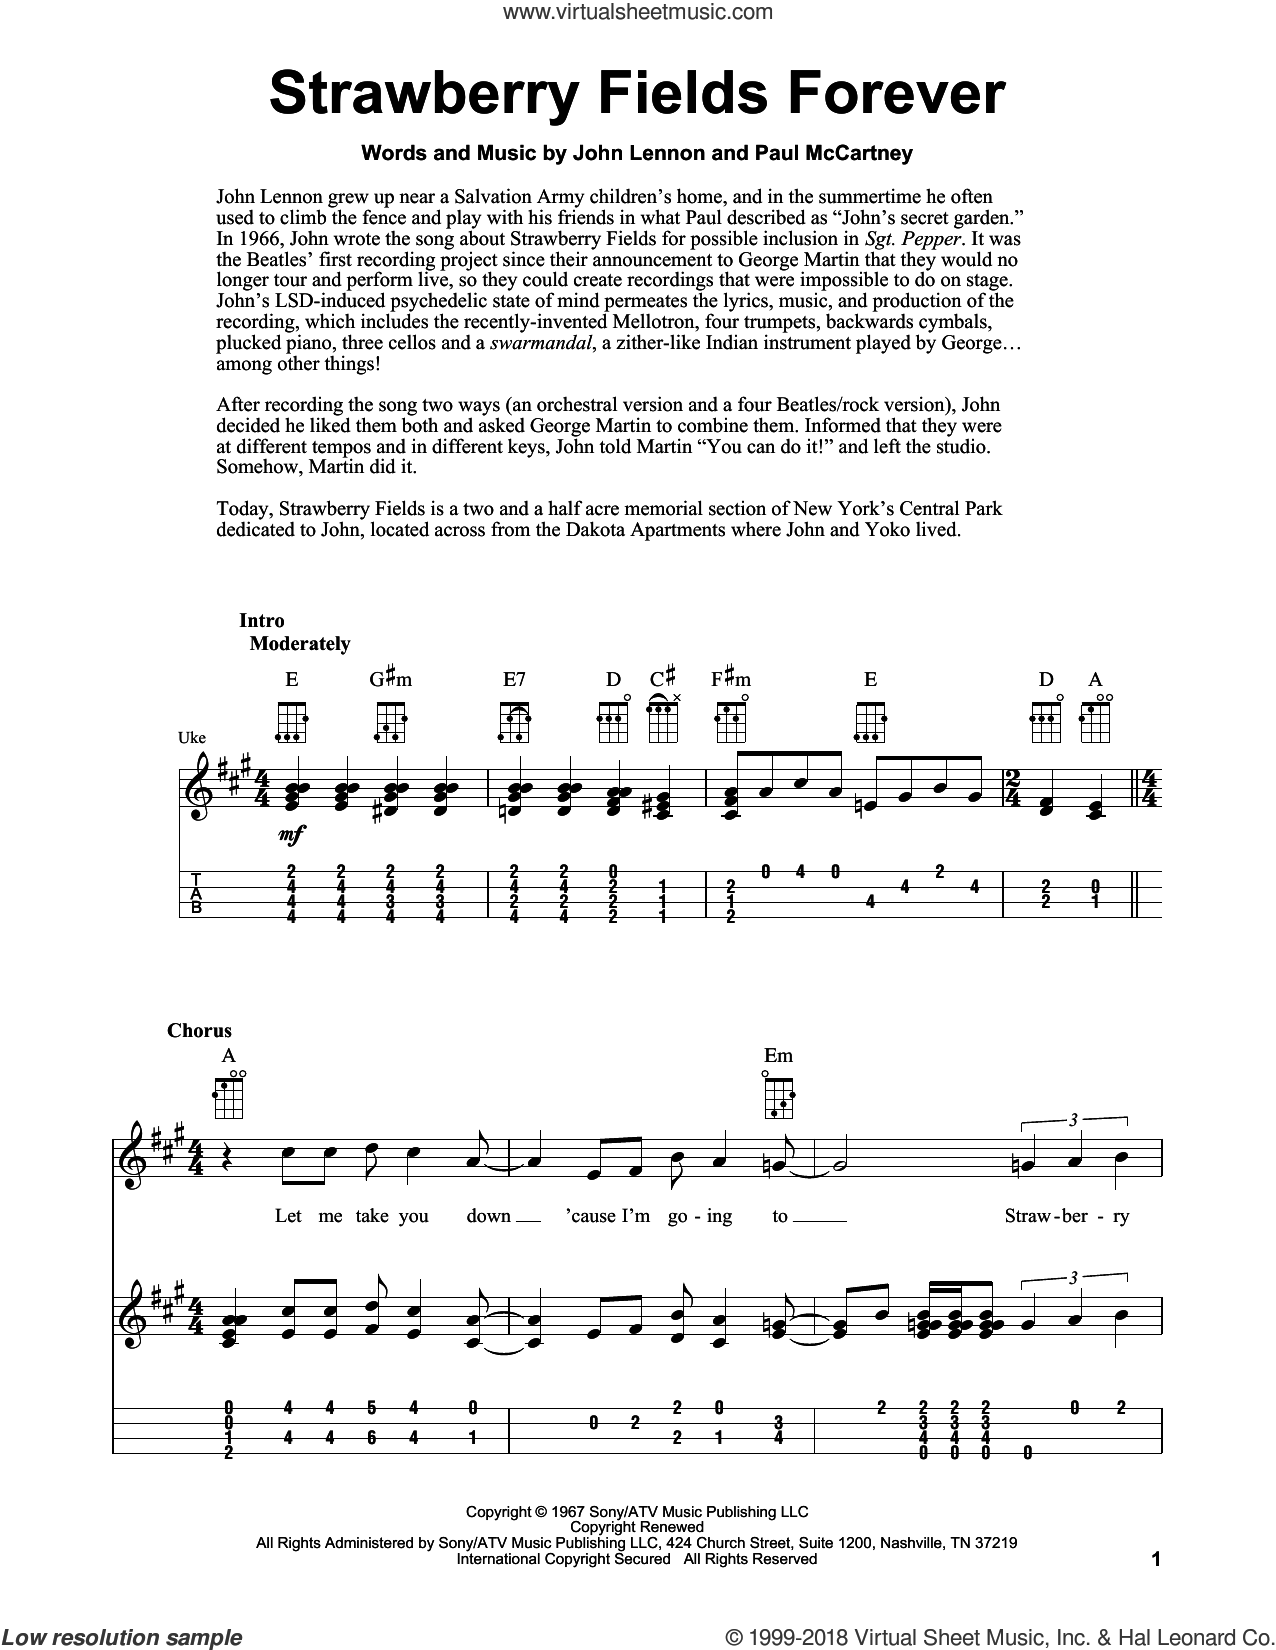 Strawberry Fields Forever sheet music for ukulele by The Beatles, Fred Sokolow, John Lennon and Paul McCartney, intermediate skill level